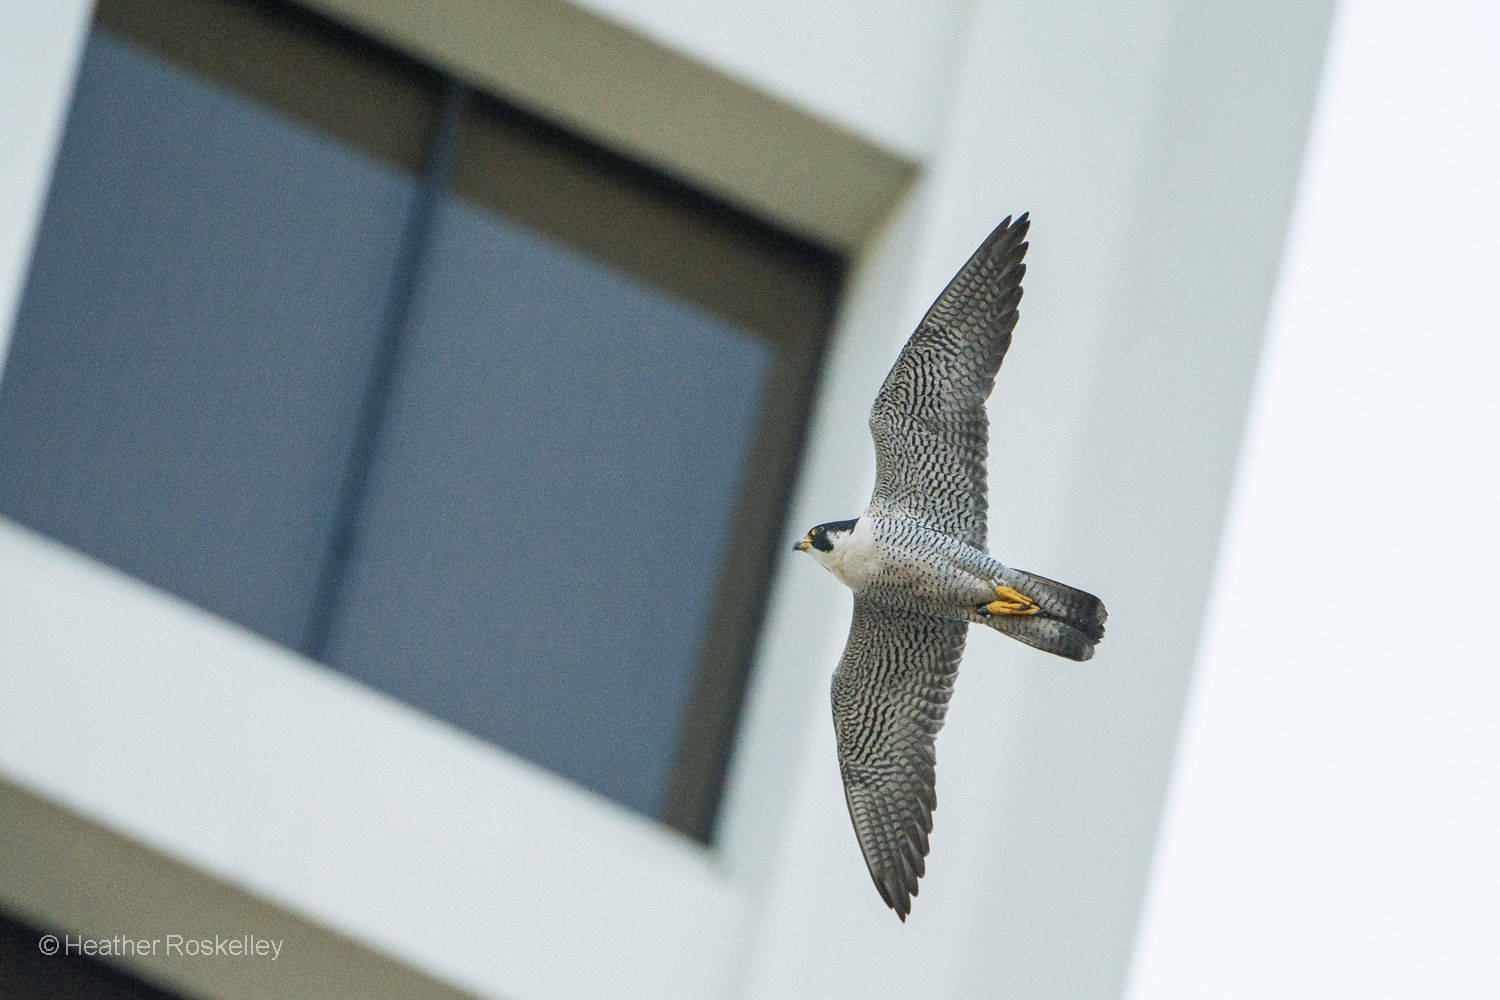 Murray, the father Peregrine Falcon, flies past a nearby office building in downtown Tacoma while searching for food for his chicks.